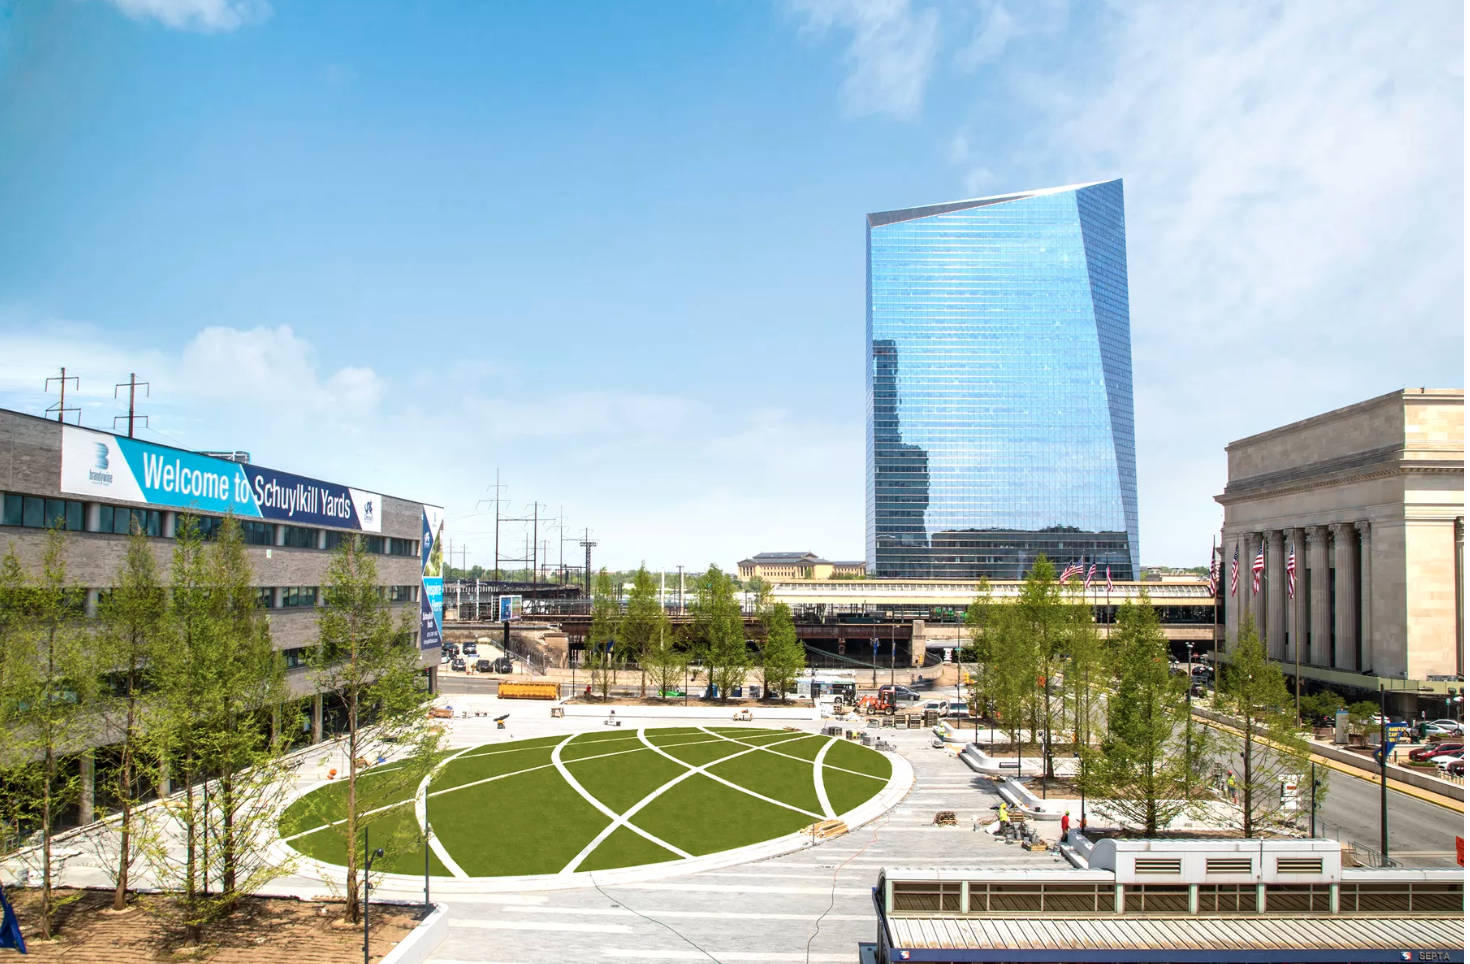 Drexel Square is a circular park bringing 1.3 acres of green space to a former parking lot across from 30th Street Station.